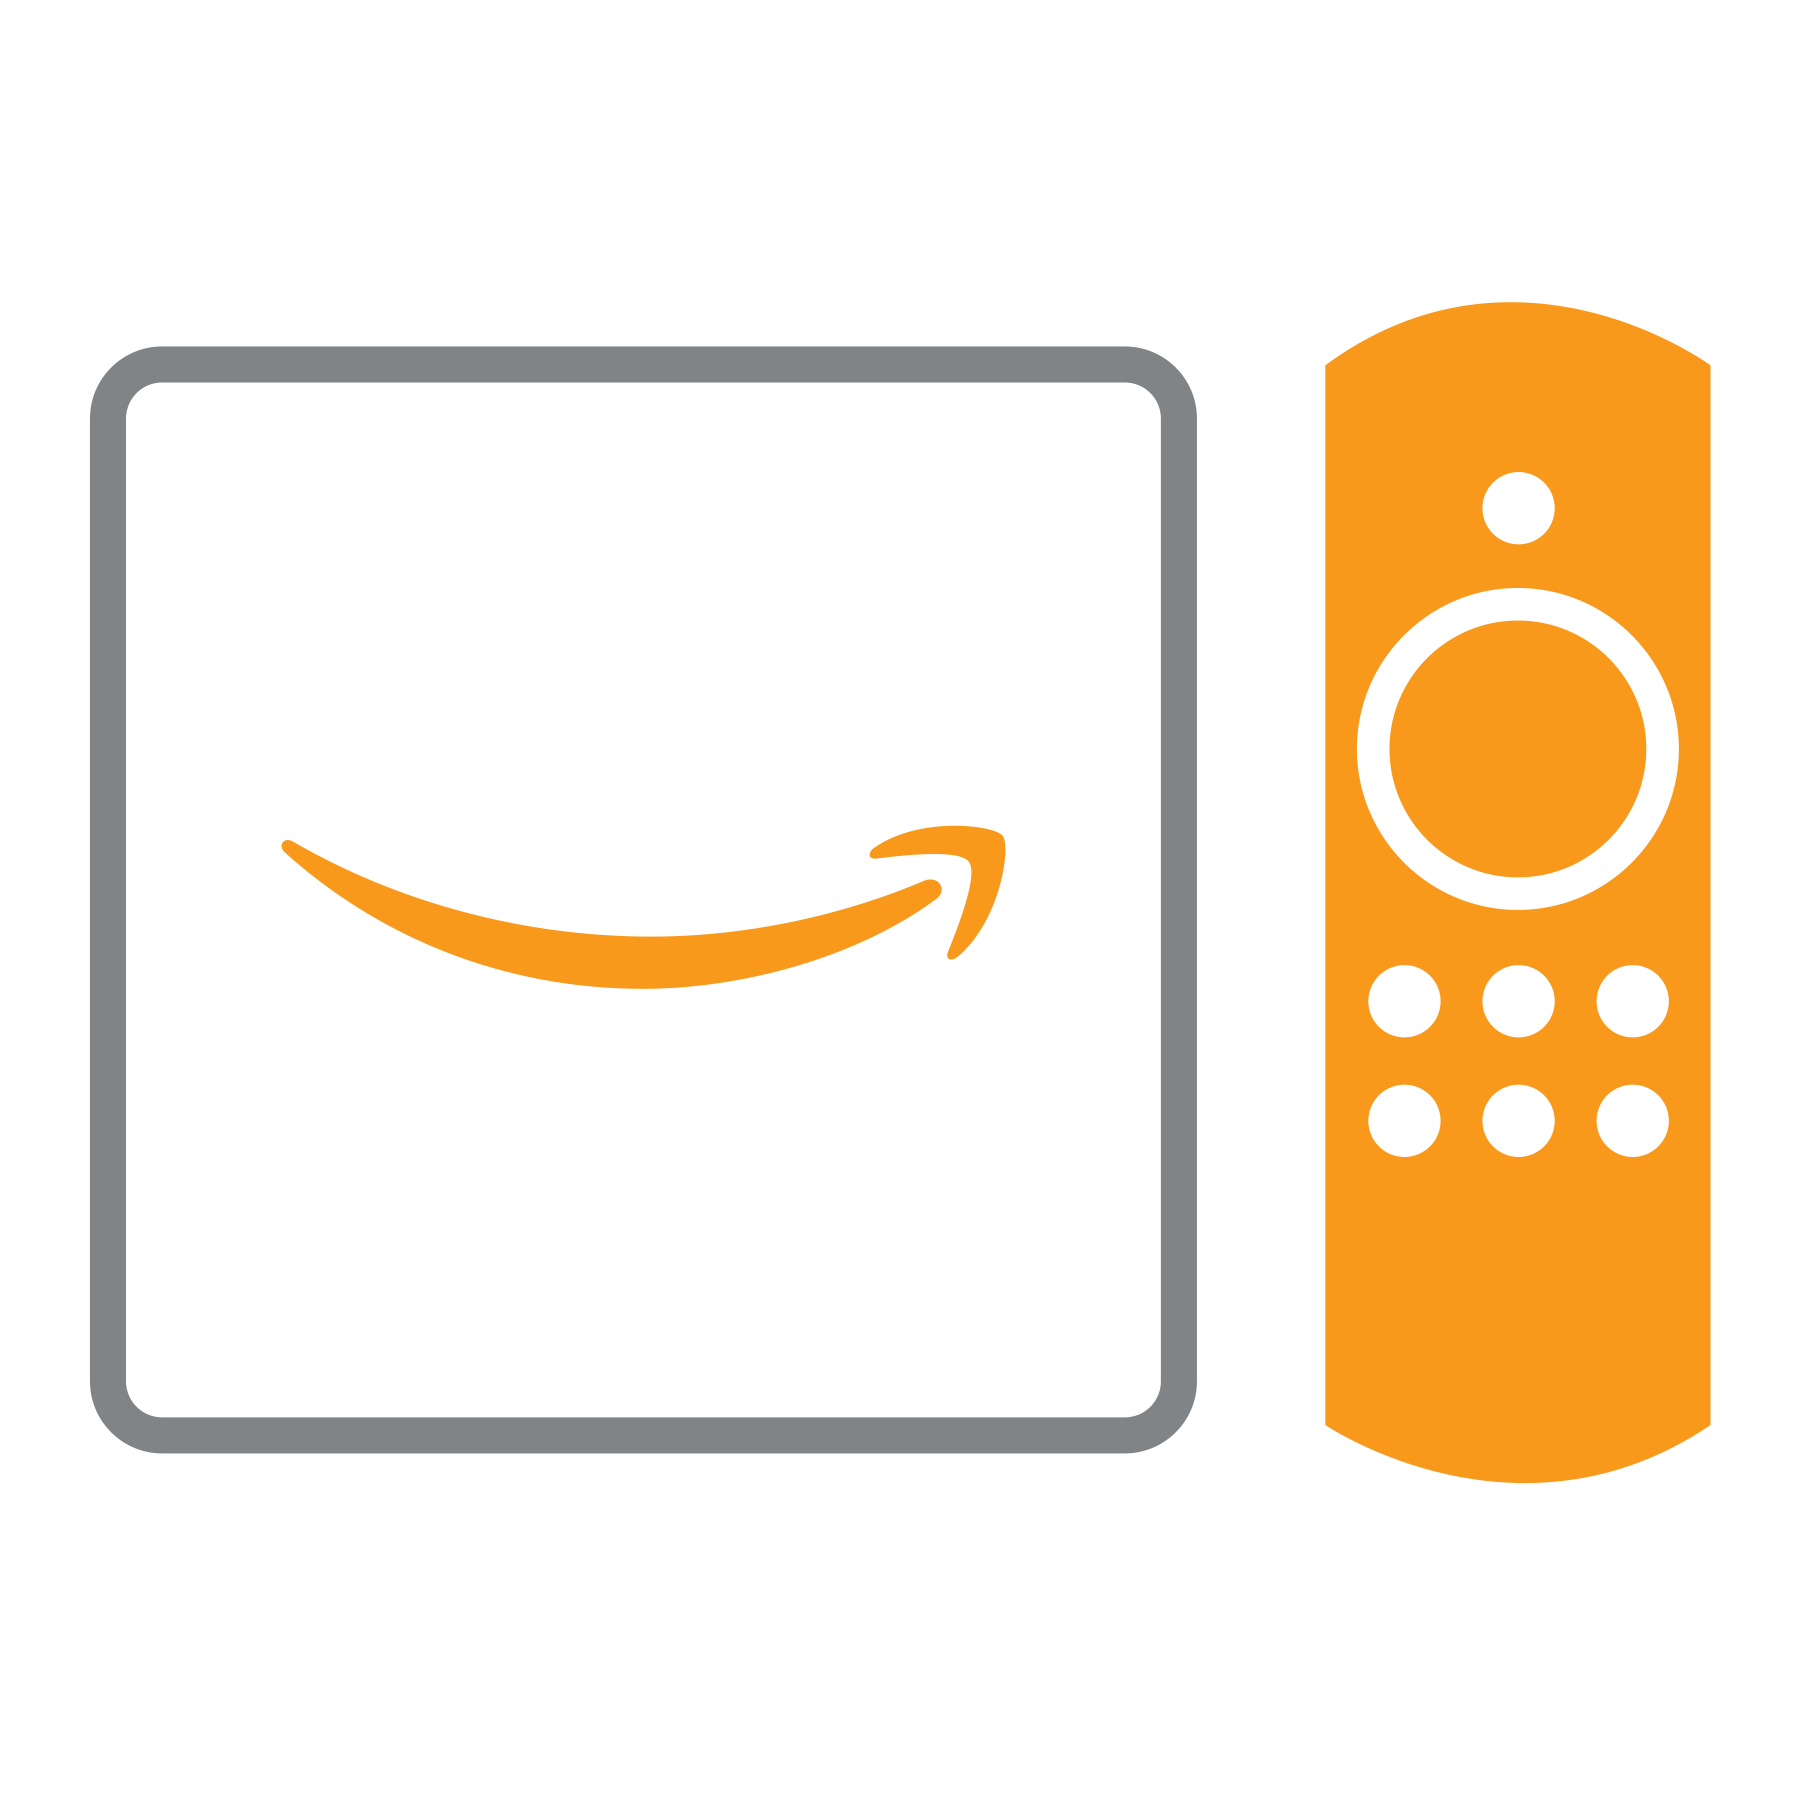 Fire TV screen and remote